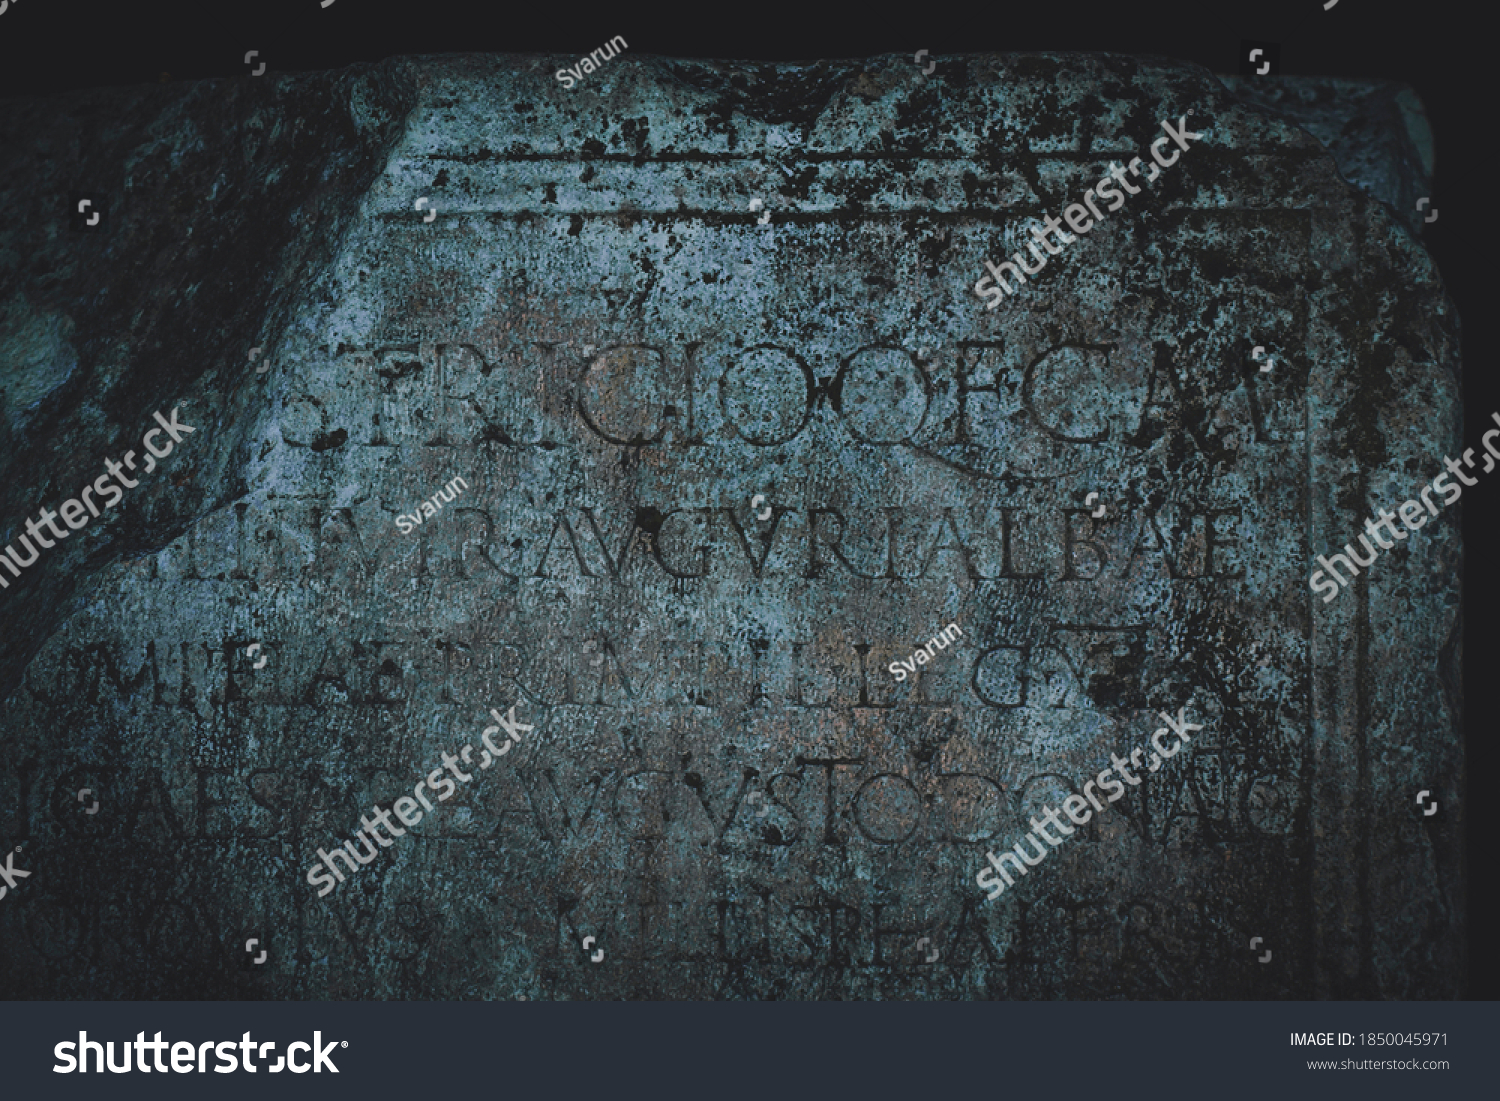 Ancient Roman letters carved in stone. Roman text and inscriptions. Can be used as a background or a book cover